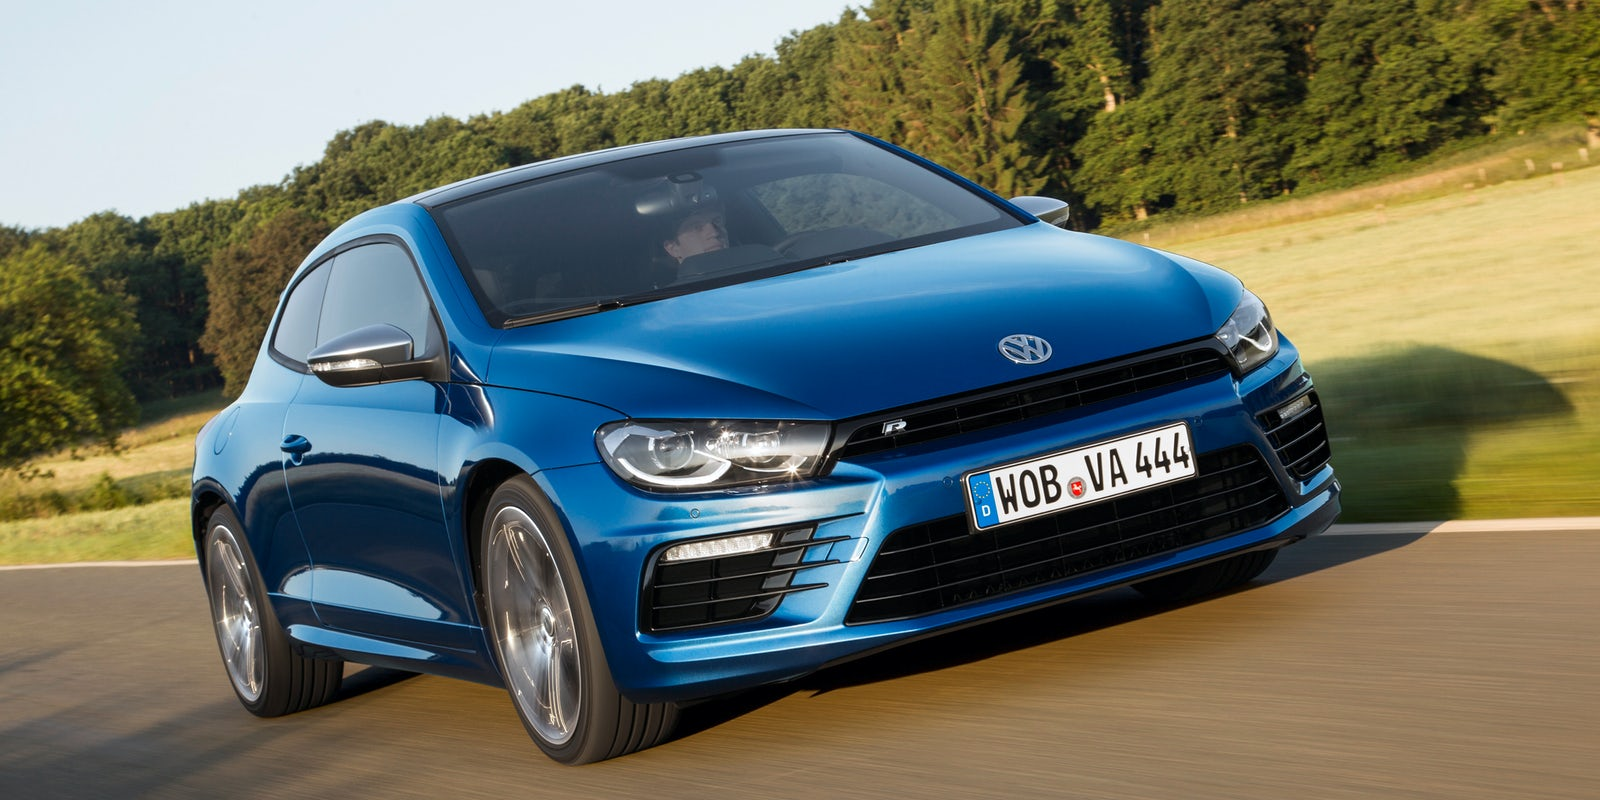 Volkswagen scirocco for sale in usa - 8 12